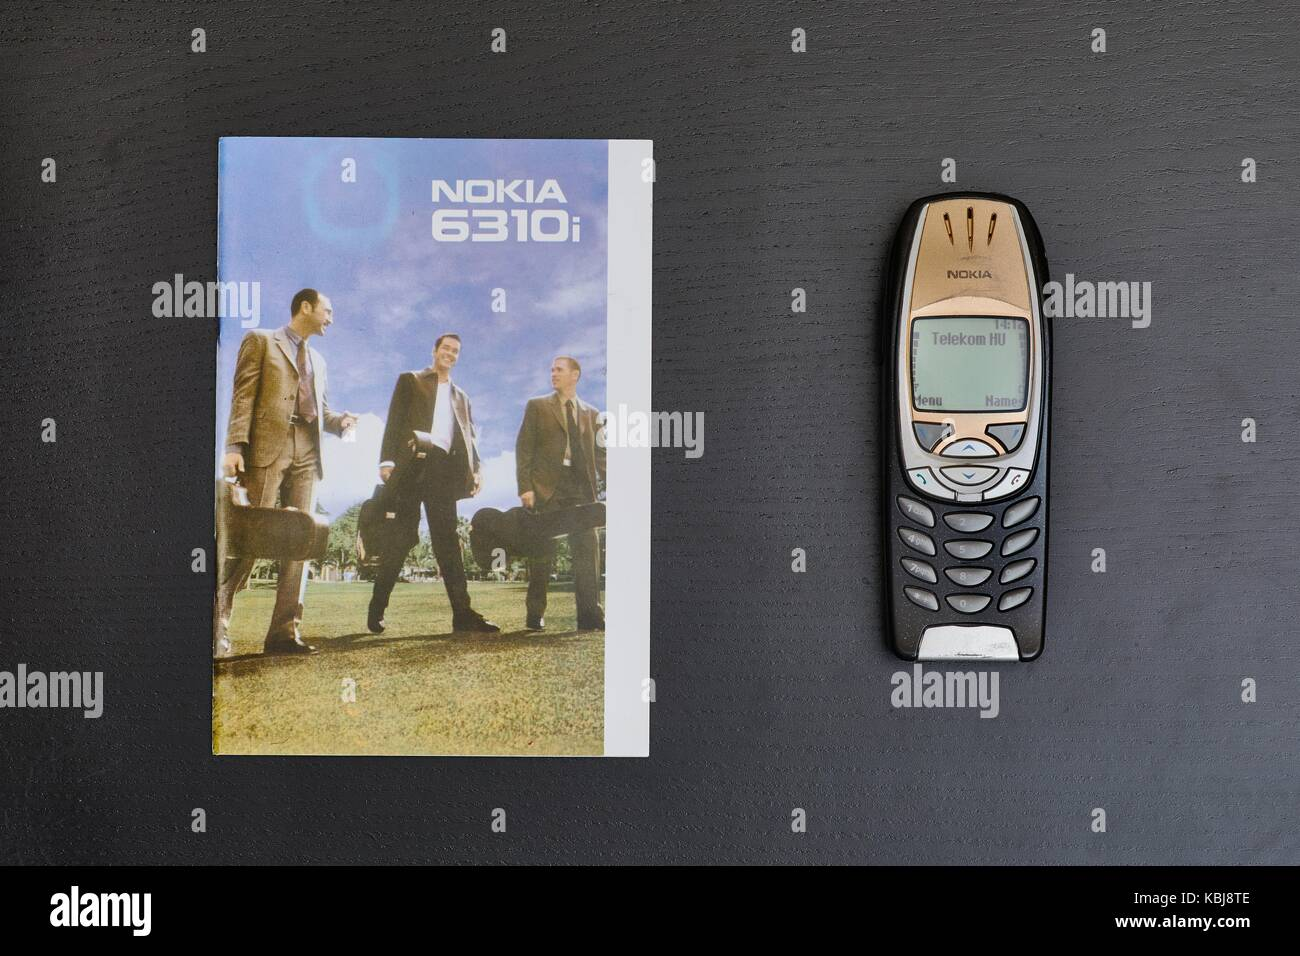 Old Nokia Mobile Phone Stock Photos Circuit Board From A 3310 Photo Picture And Image